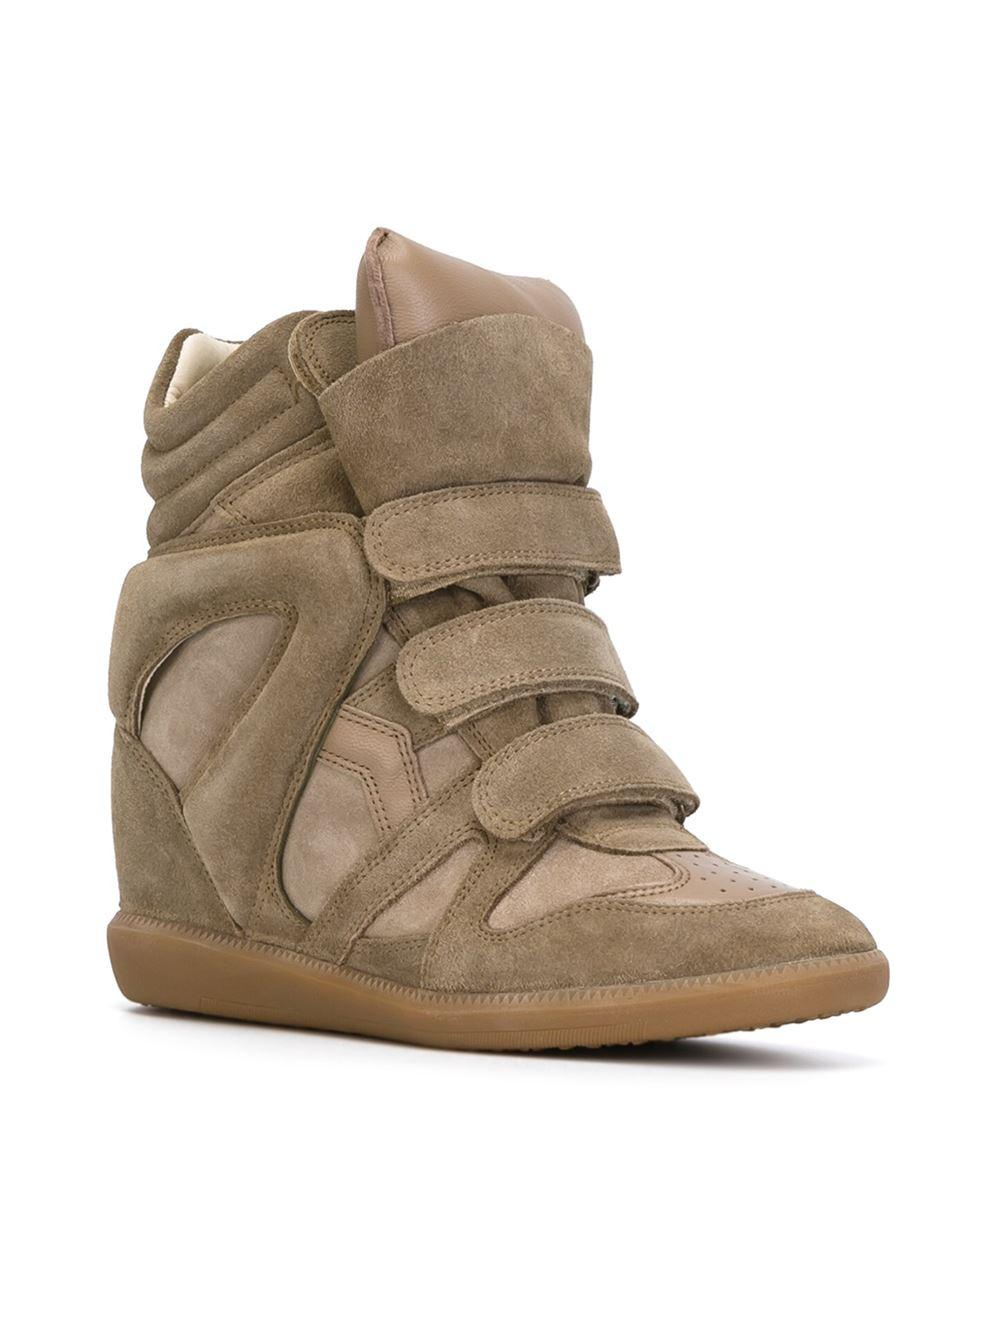 Étoile Isabel Marant Leather Bekett Sneakers in Beige (Natural)